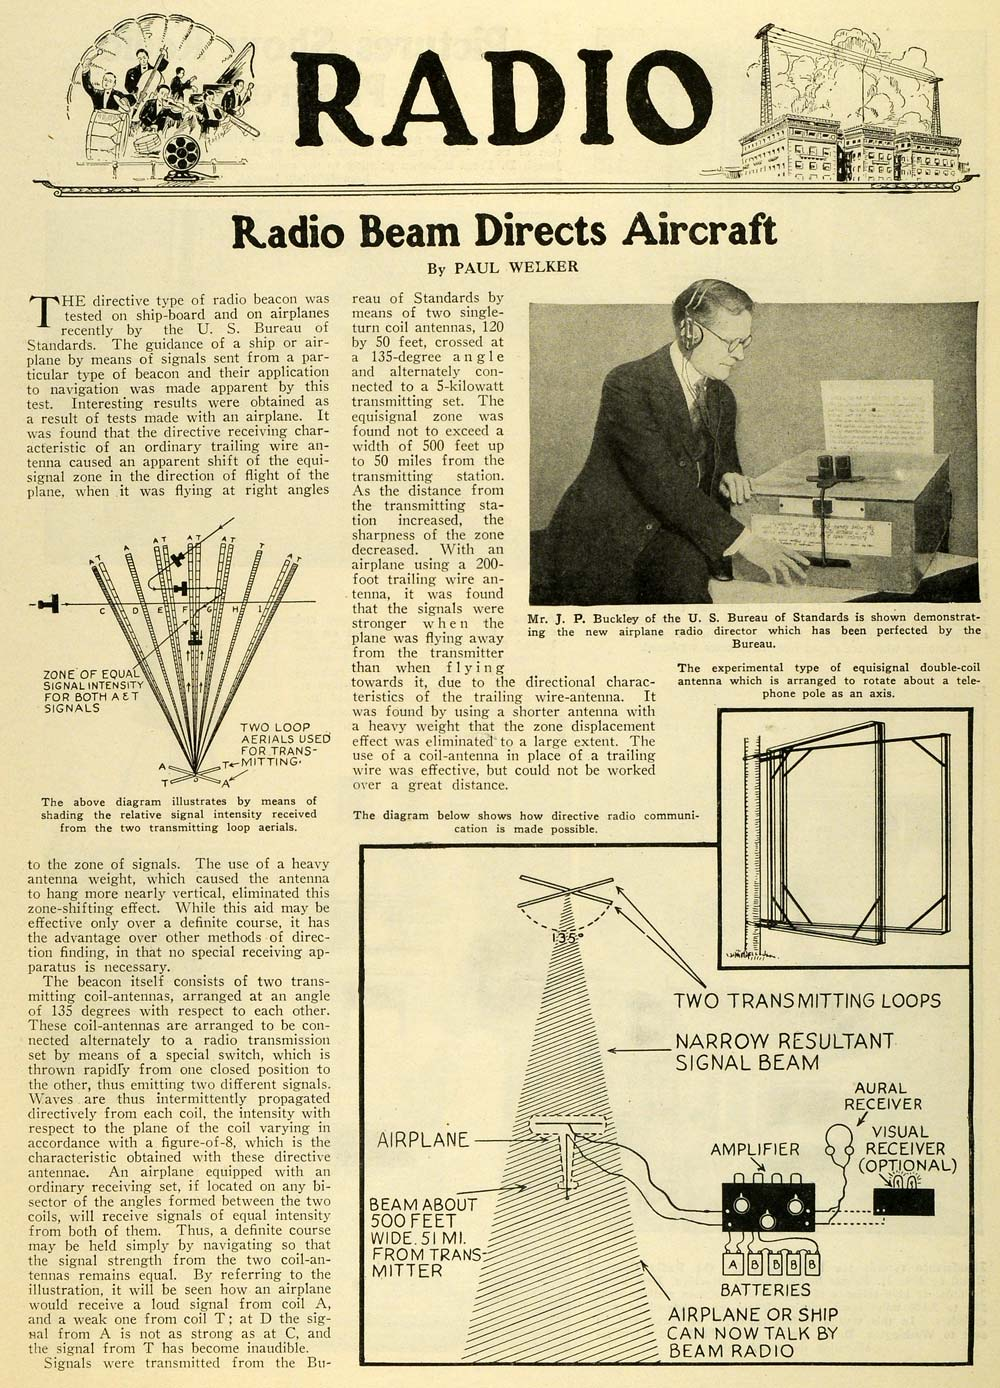 1927 article science invention radio beam directs aircraft 1927 article science invention radio beam directs aircraft blueprint jp si1 malvernweather Choice Image